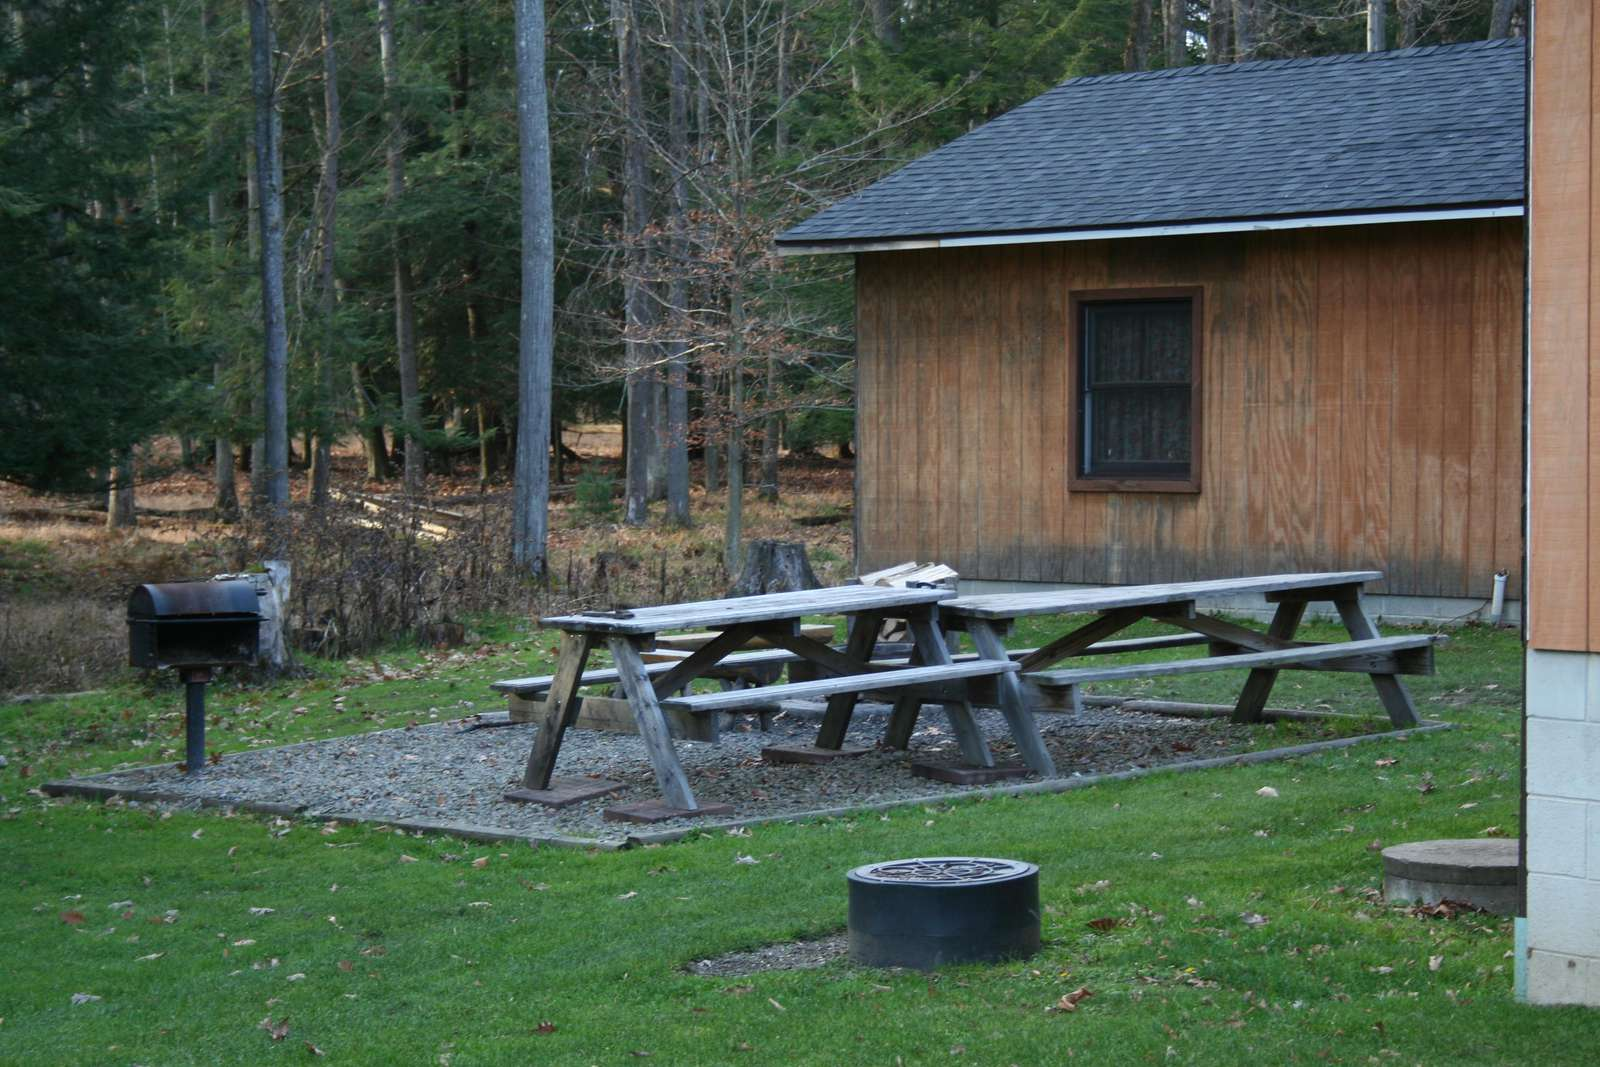 Picnic area at Sunburst Locust Cabin and the Annex. Charcoal Grill, Firepit, picnic tables.